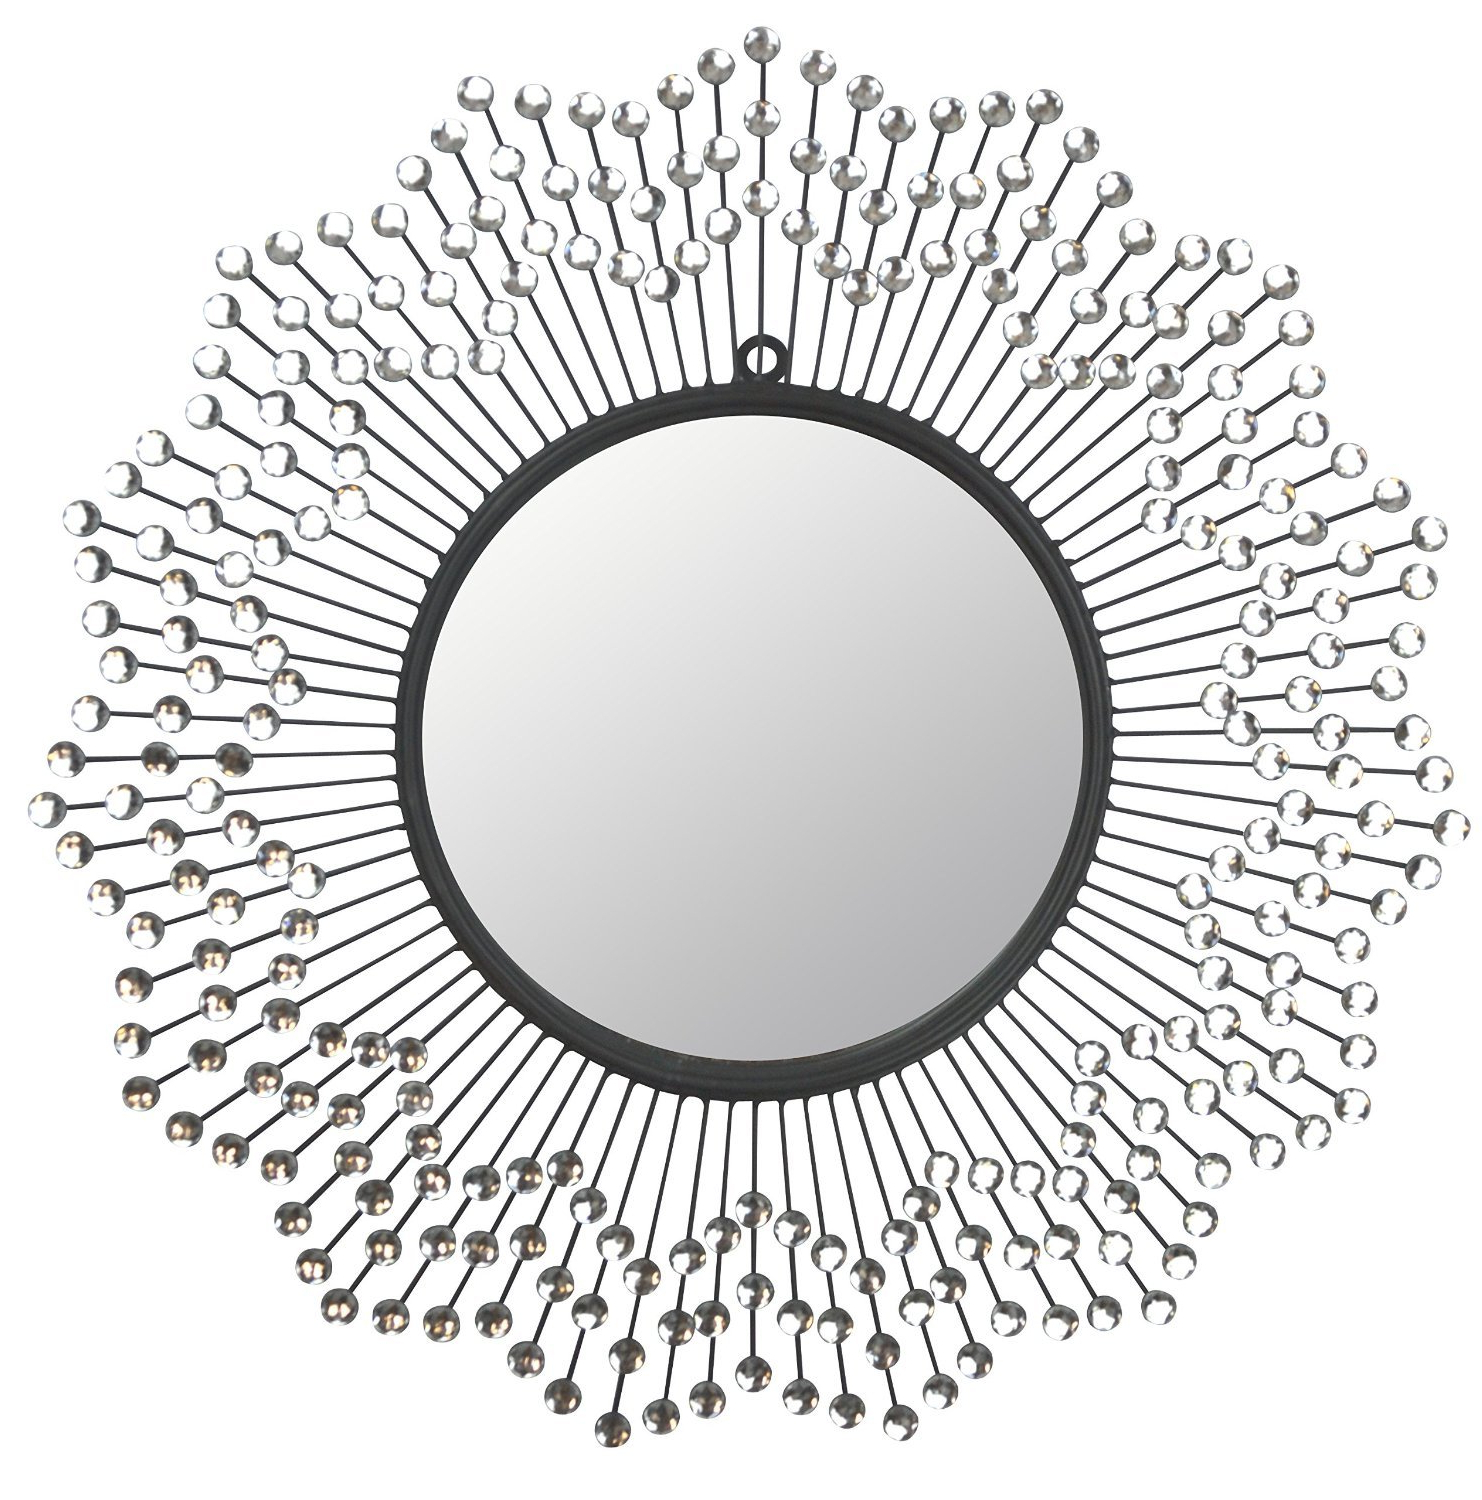 "Decorative Round Wall Mirrors Throughout Newest Lulu Décor, Celebration Metal Wall Mirror, Frame 24"", Round Decorative Mirror For Living Room And Office Space (View 8 of 20)"